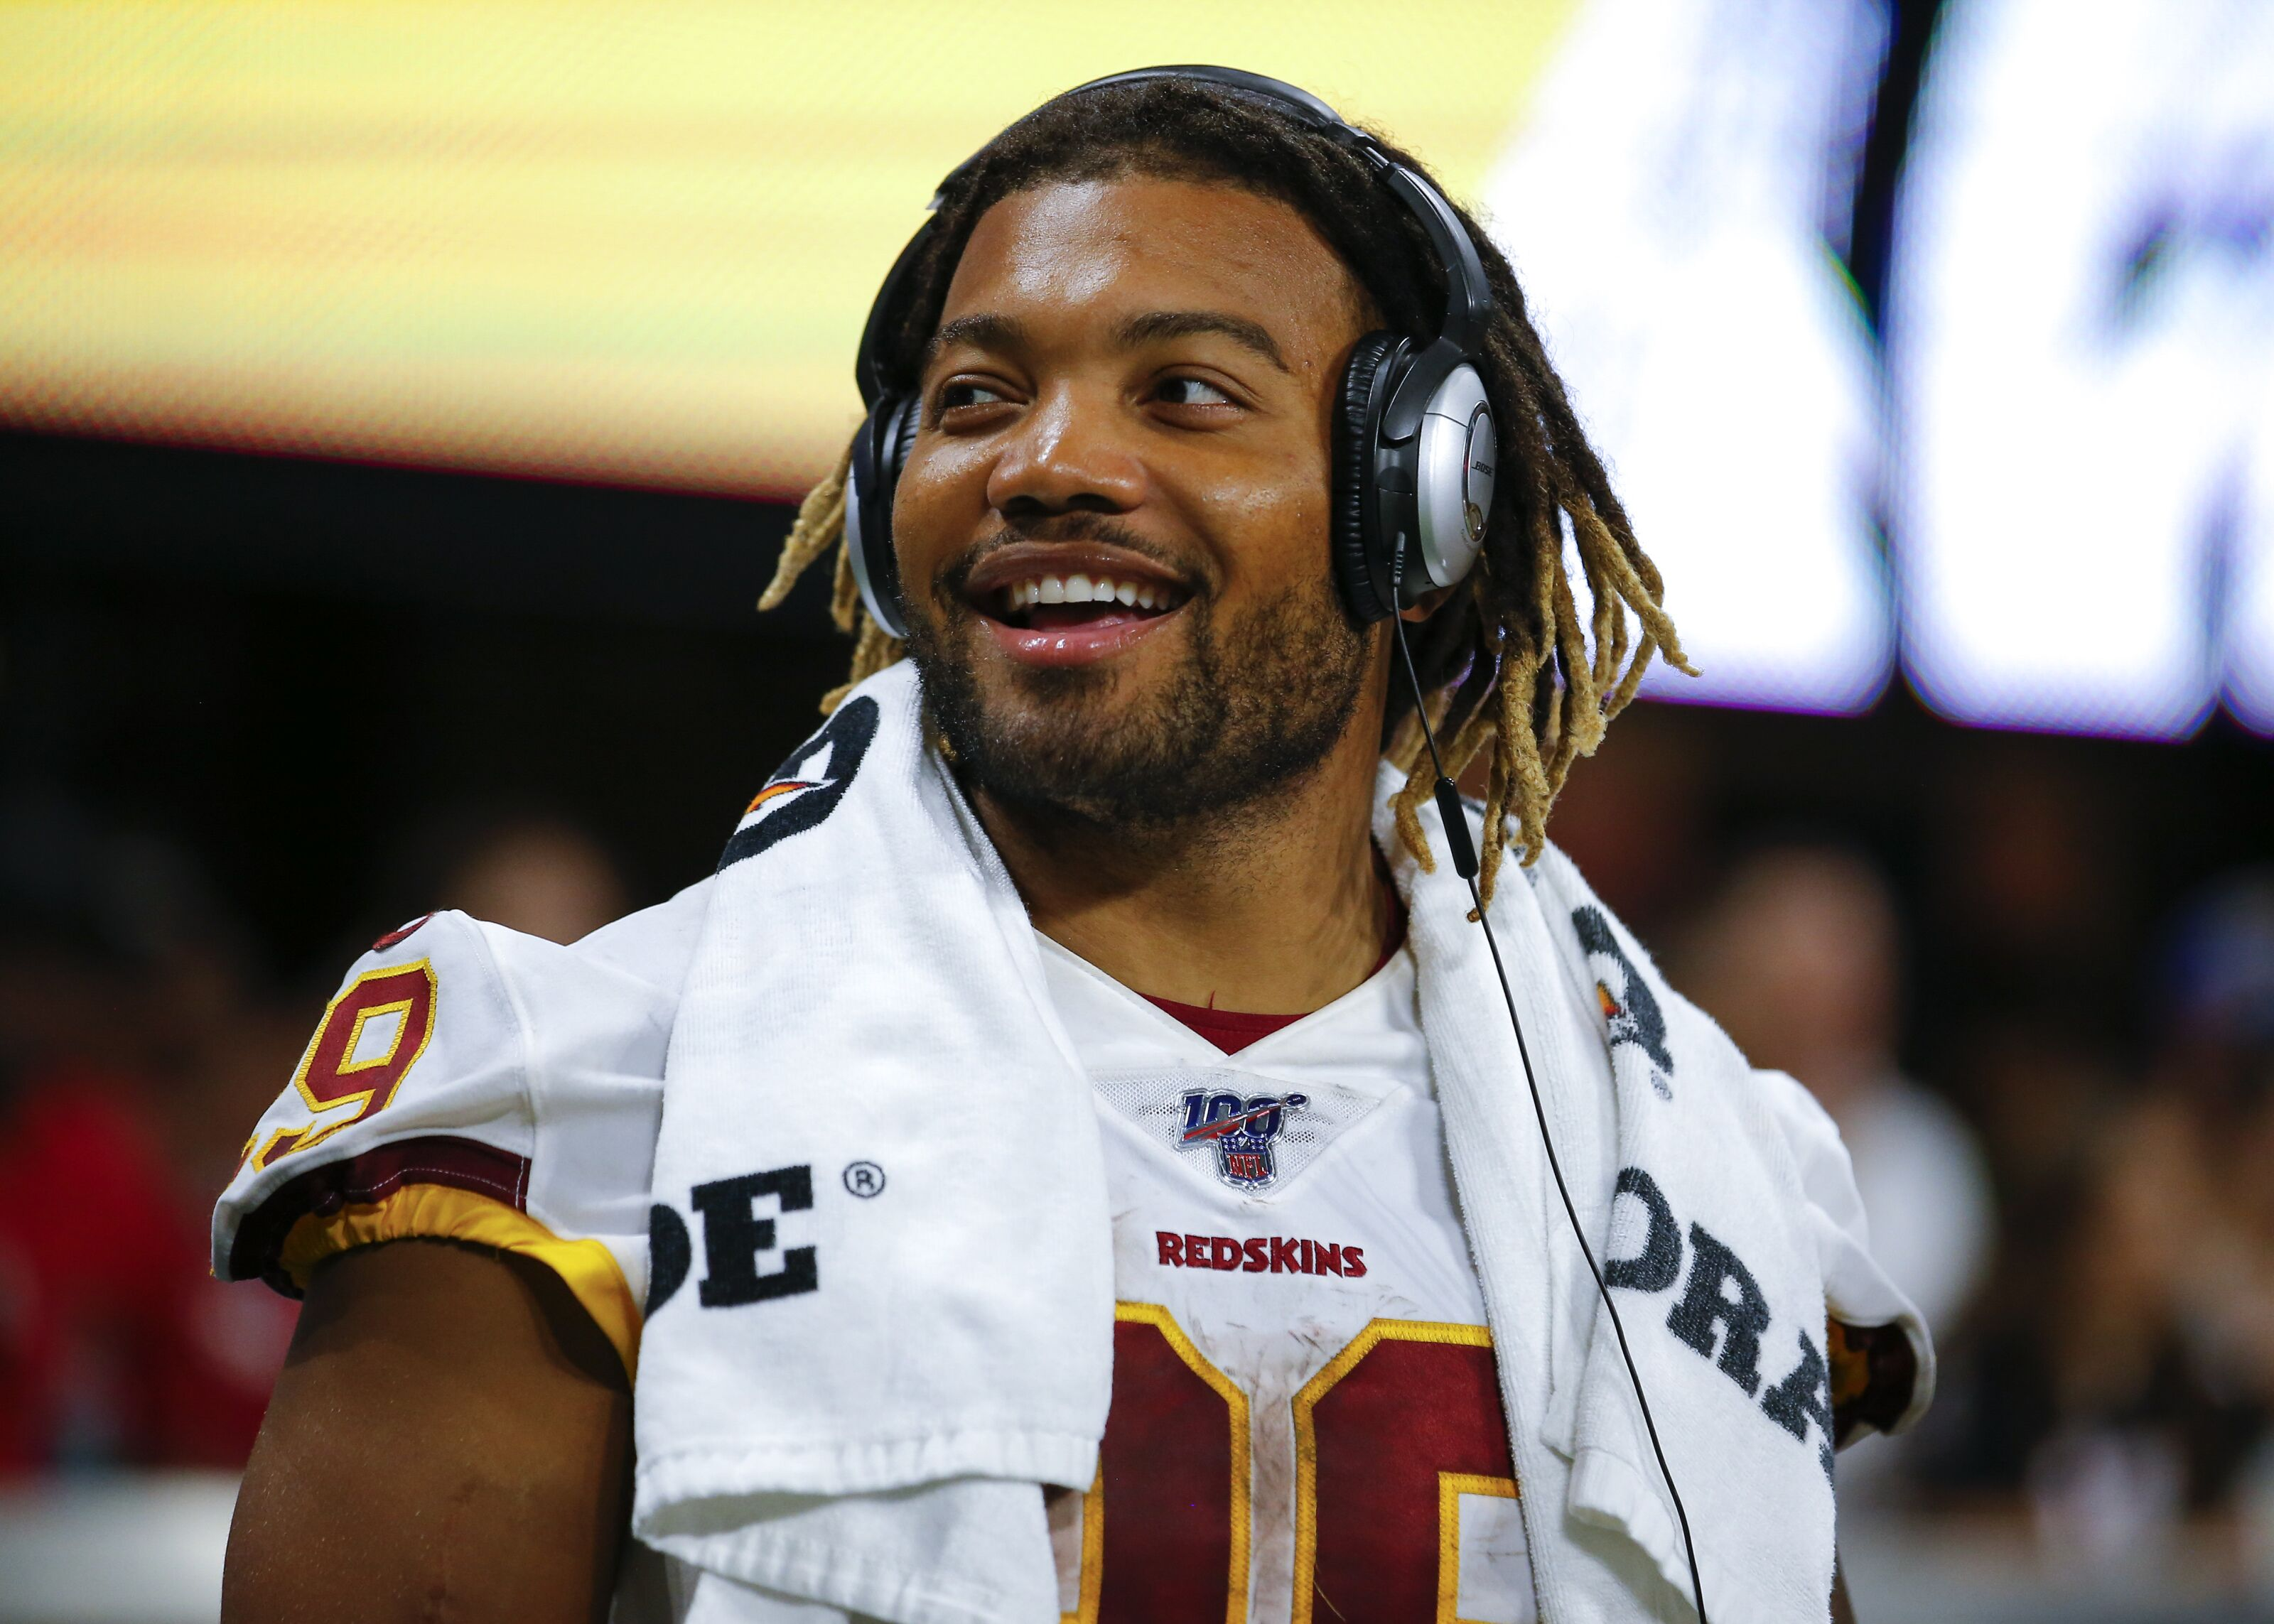 promo code 9e1e8 17267 Reports: Redskins RB Derrius Guice to miss time with a knee ...